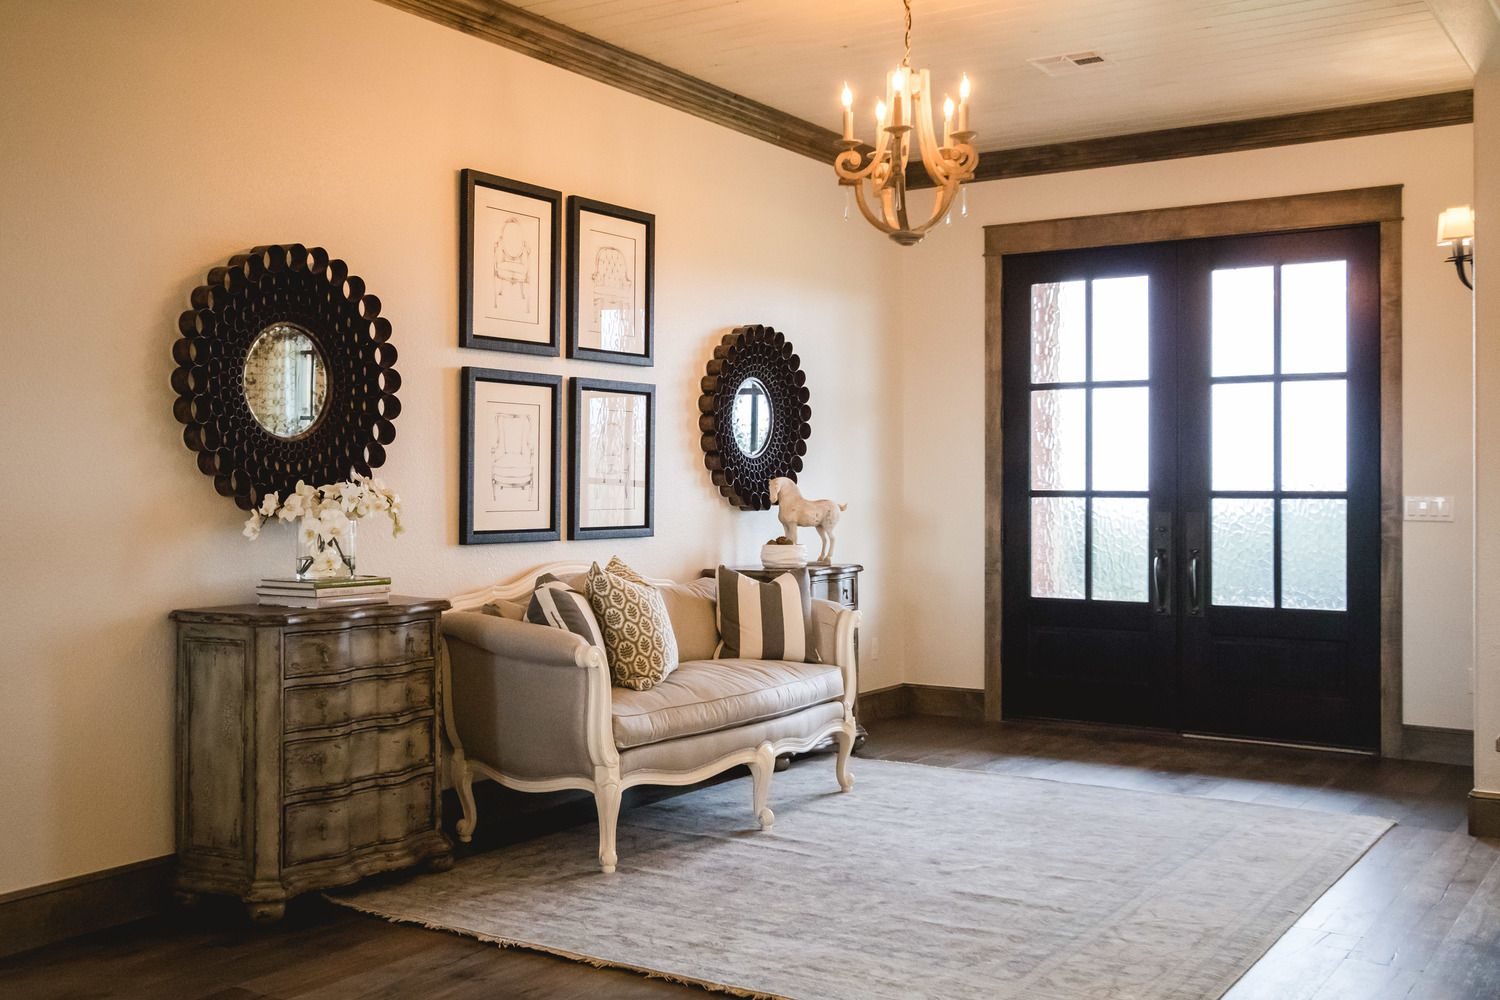 Architectural details and interior design by alicia zupan for ethan